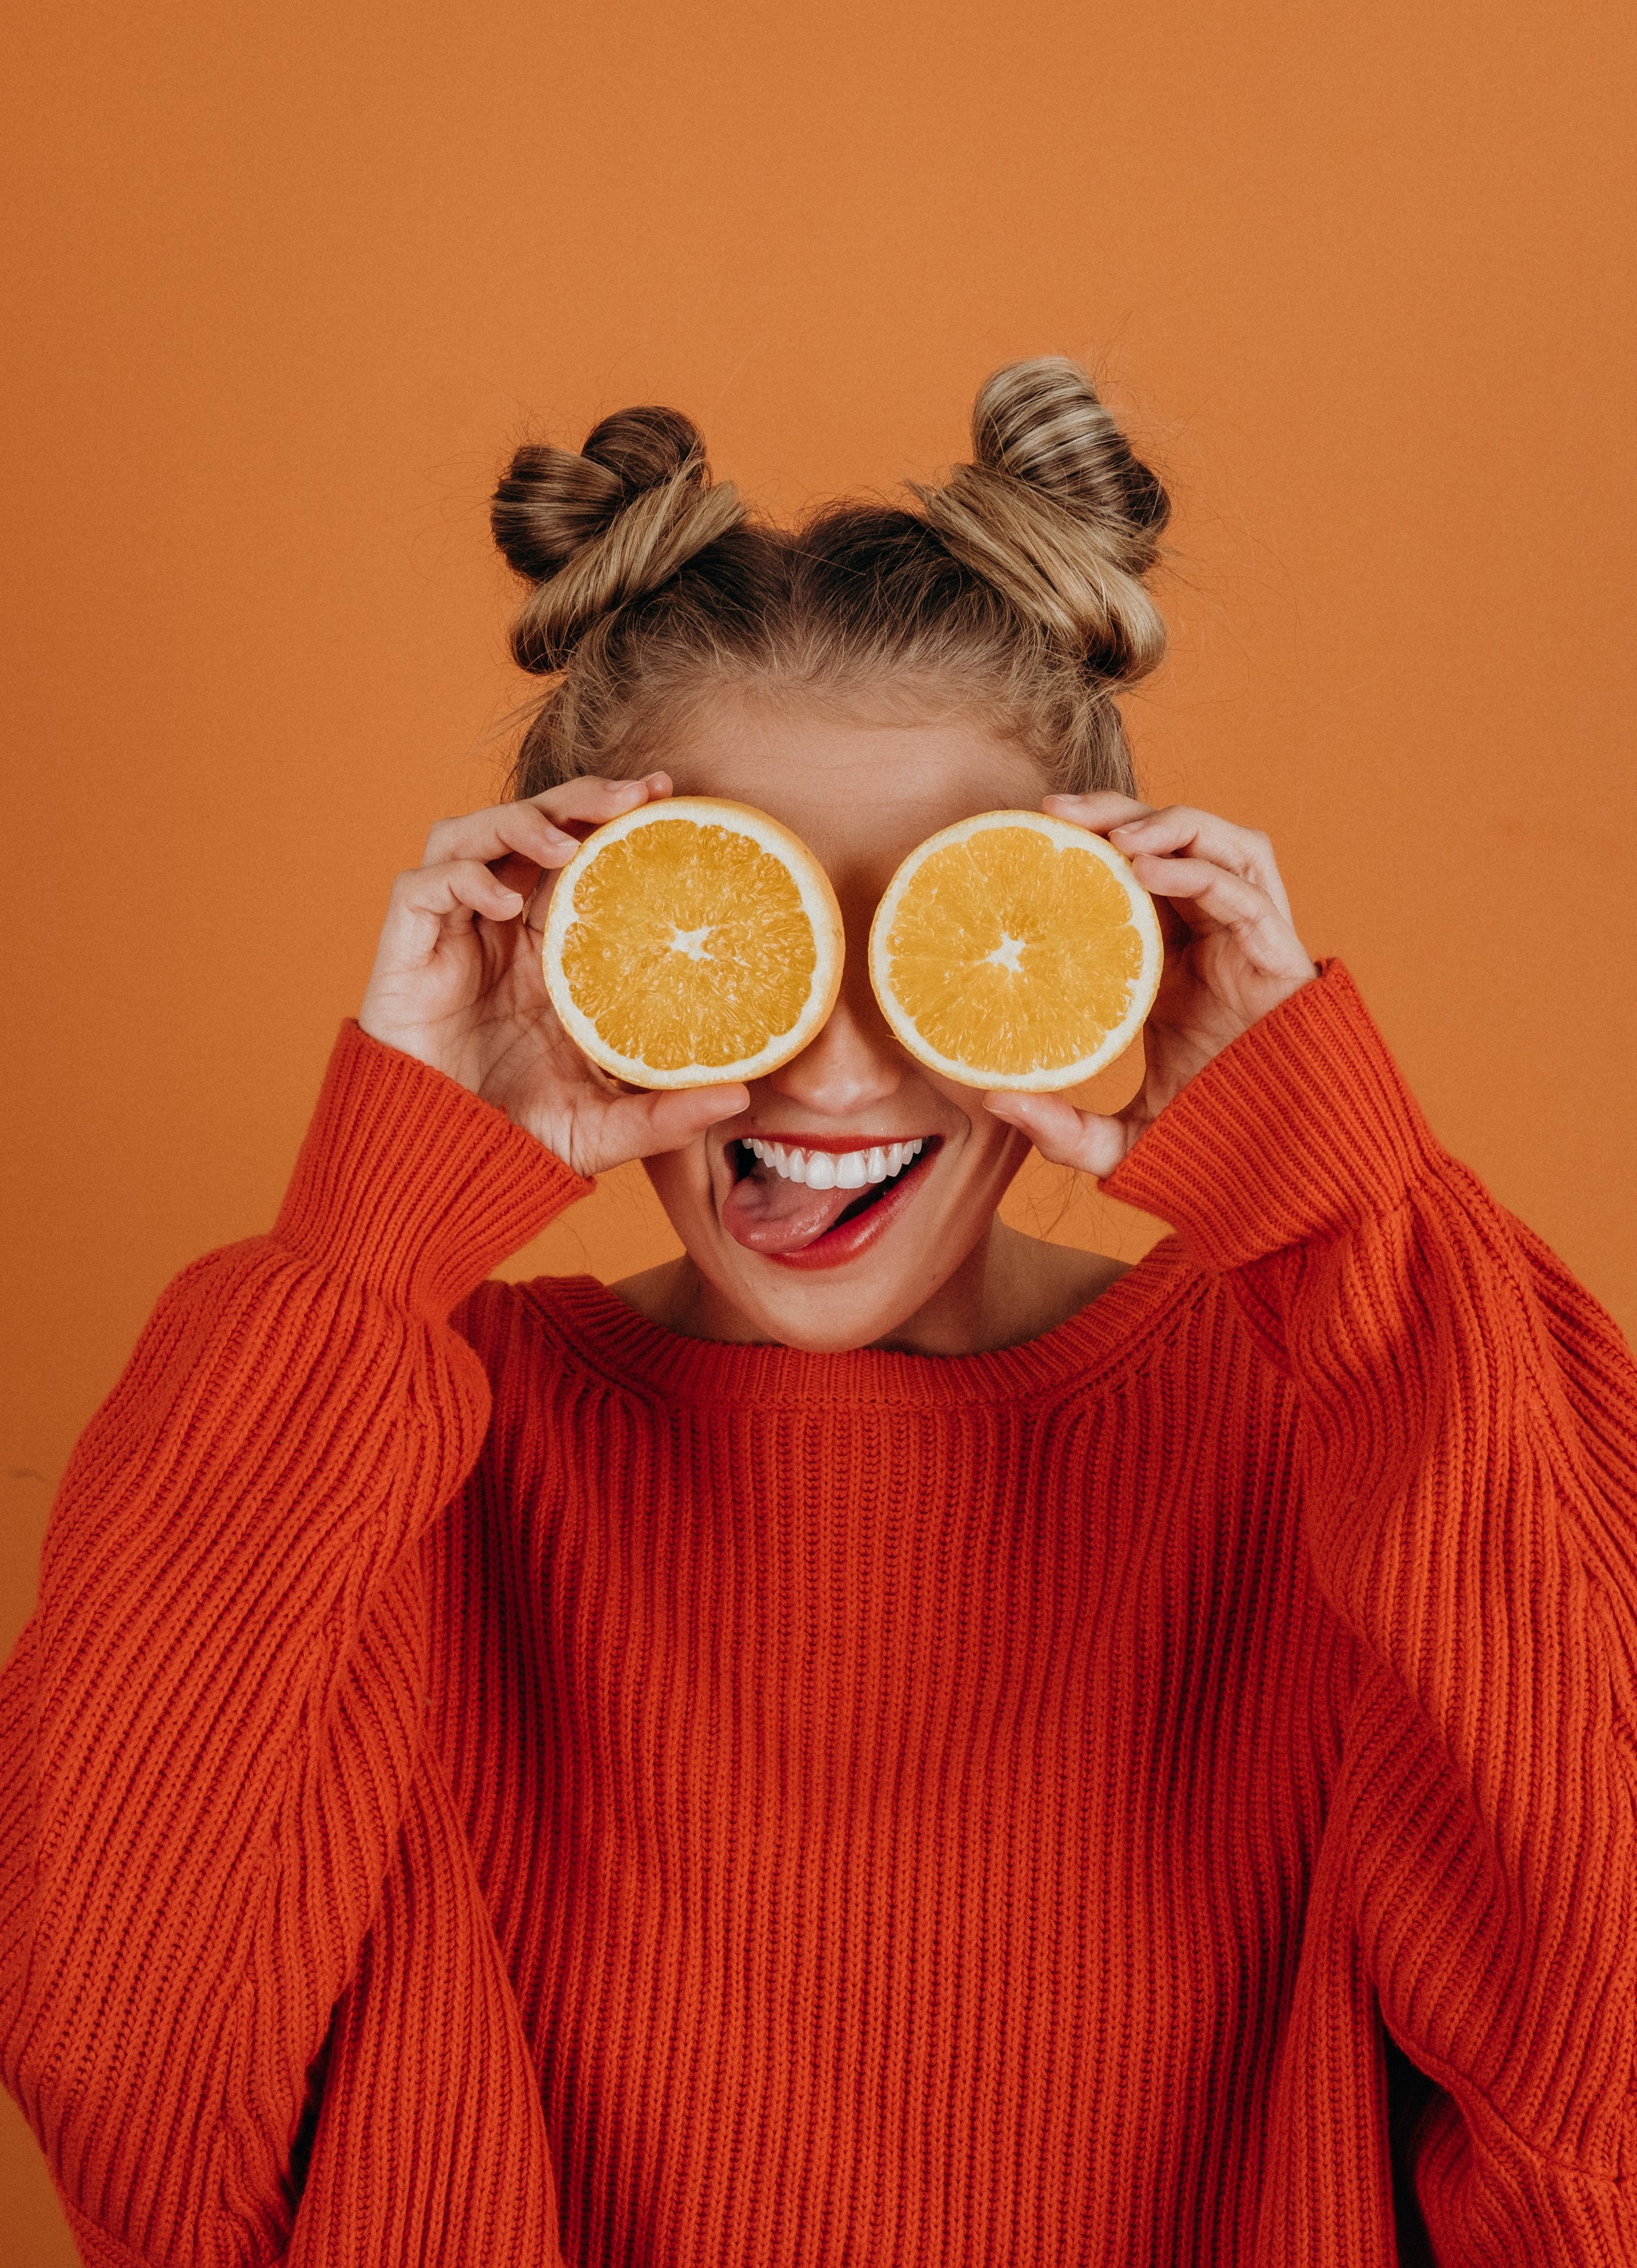 woman holding two oranges against her eyes and grinning